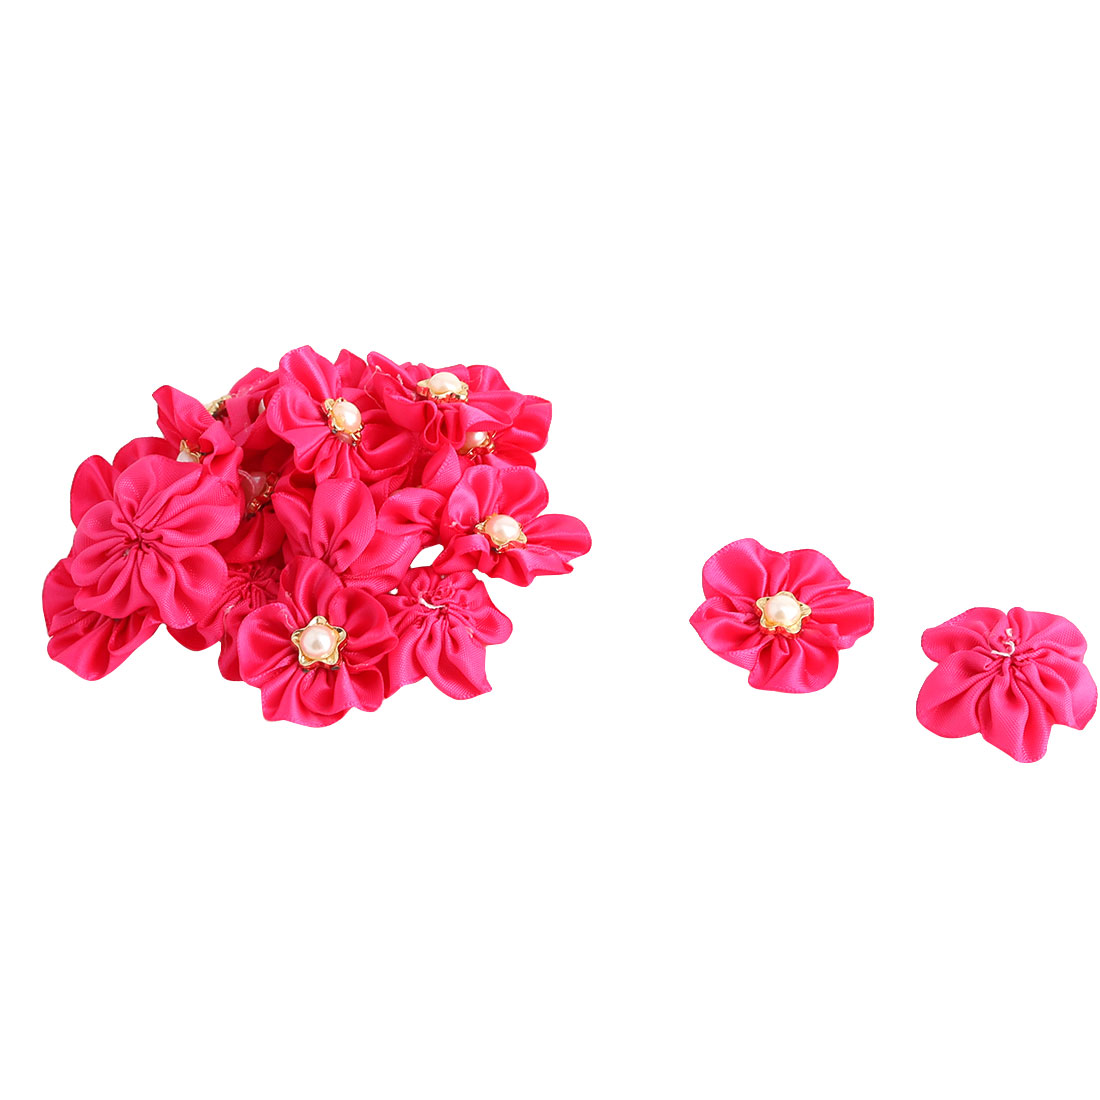 Lady Dress Hat Decor Satin Faux Pearl Inlaid DIY Ribbon Flower Fuchsia 20 Pcs